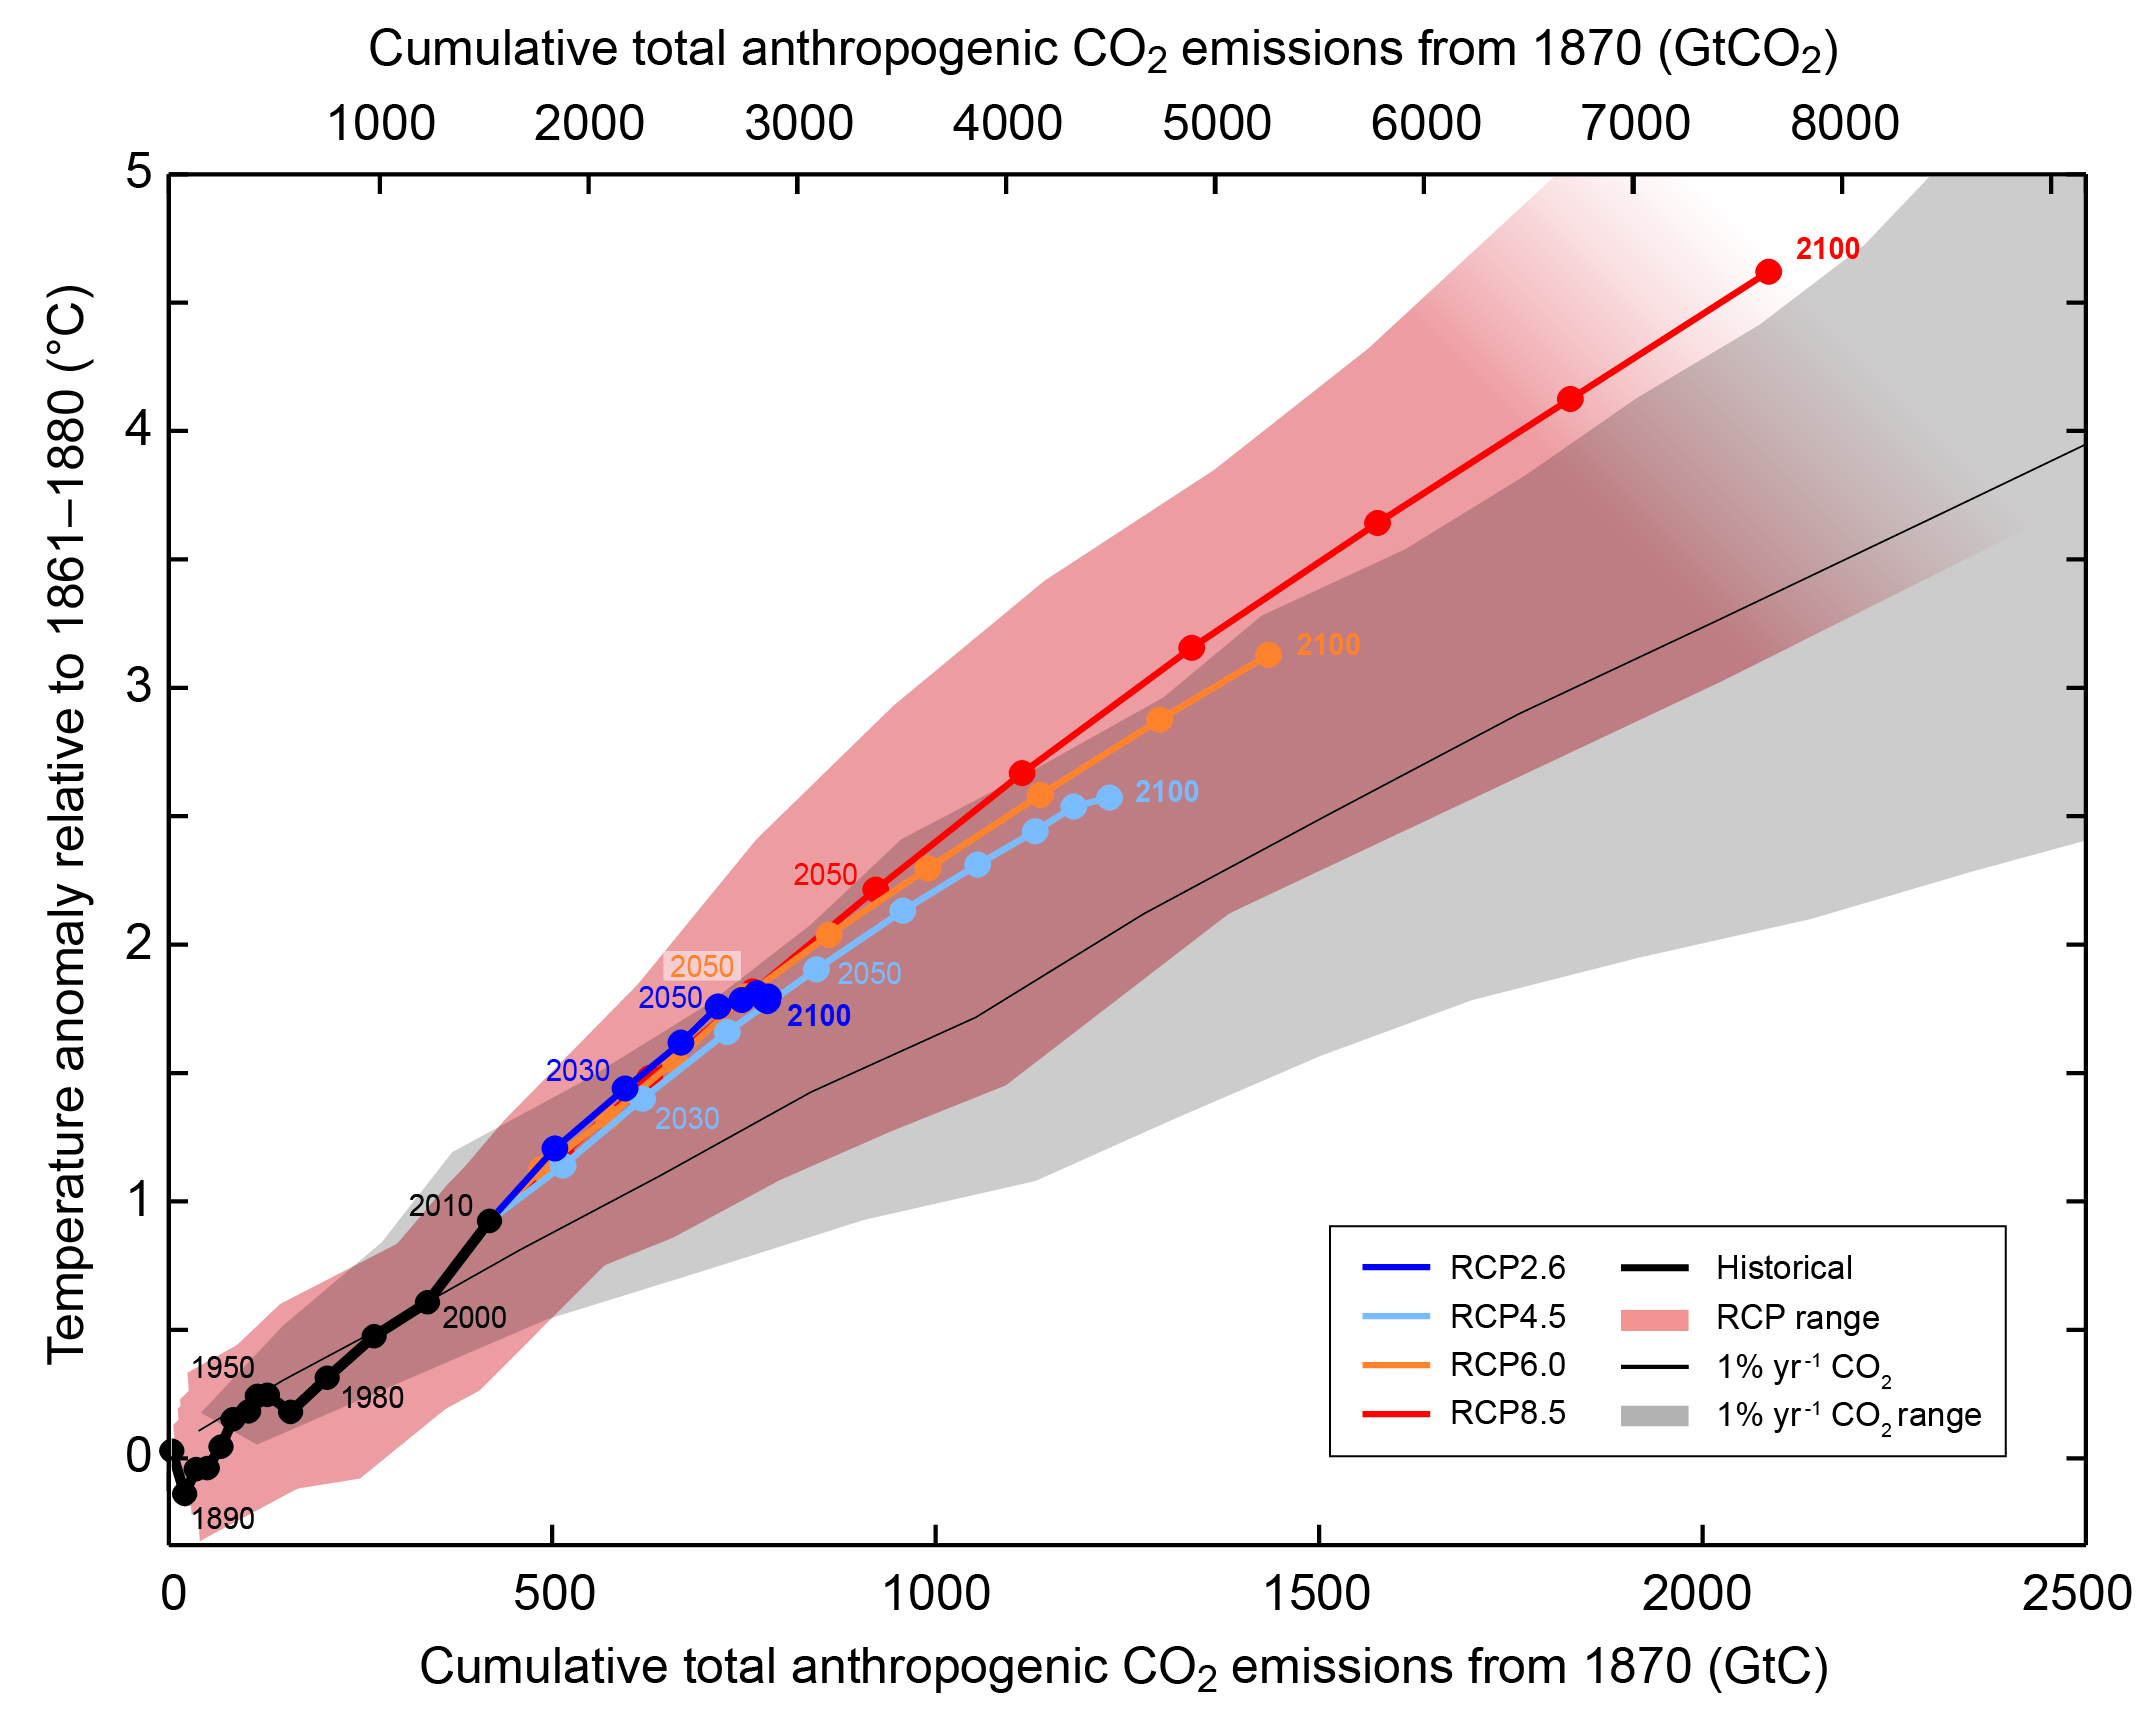 Global mean surface temperature change as a function of the cumulative anthropogenic carbon emissions. Cumulative carbon emissions are the area under the curves in Fig. 2. Colored lines show multi-model means from the RCP scenarios and colored plume indicates uncertainties. Results from exponential CO2 increase experiments at a rate of 1% per year are shown as the black line and grey shading. RCP scenarios lead to somewhat larger warming because they include additional non-CO2 forcings. From ipcc.ch.